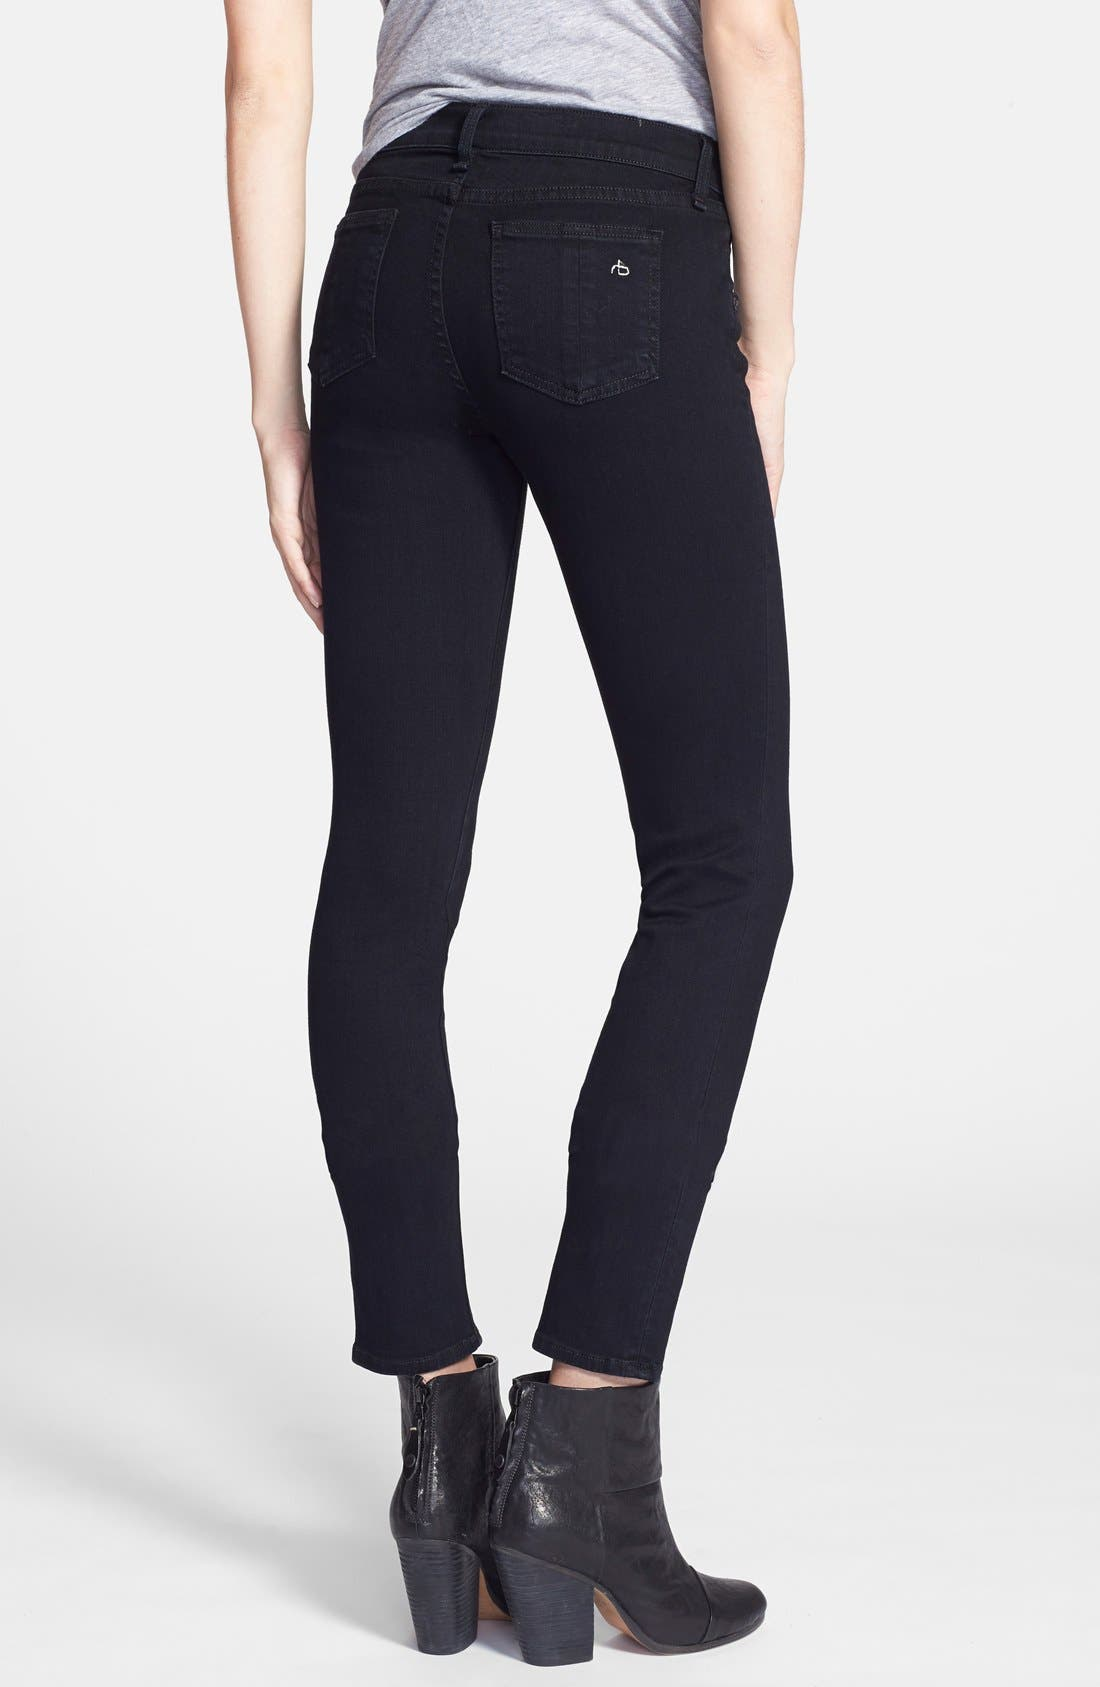 'The Skinny' Stretch Jeans,                             Alternate thumbnail 11, color,                             COAL